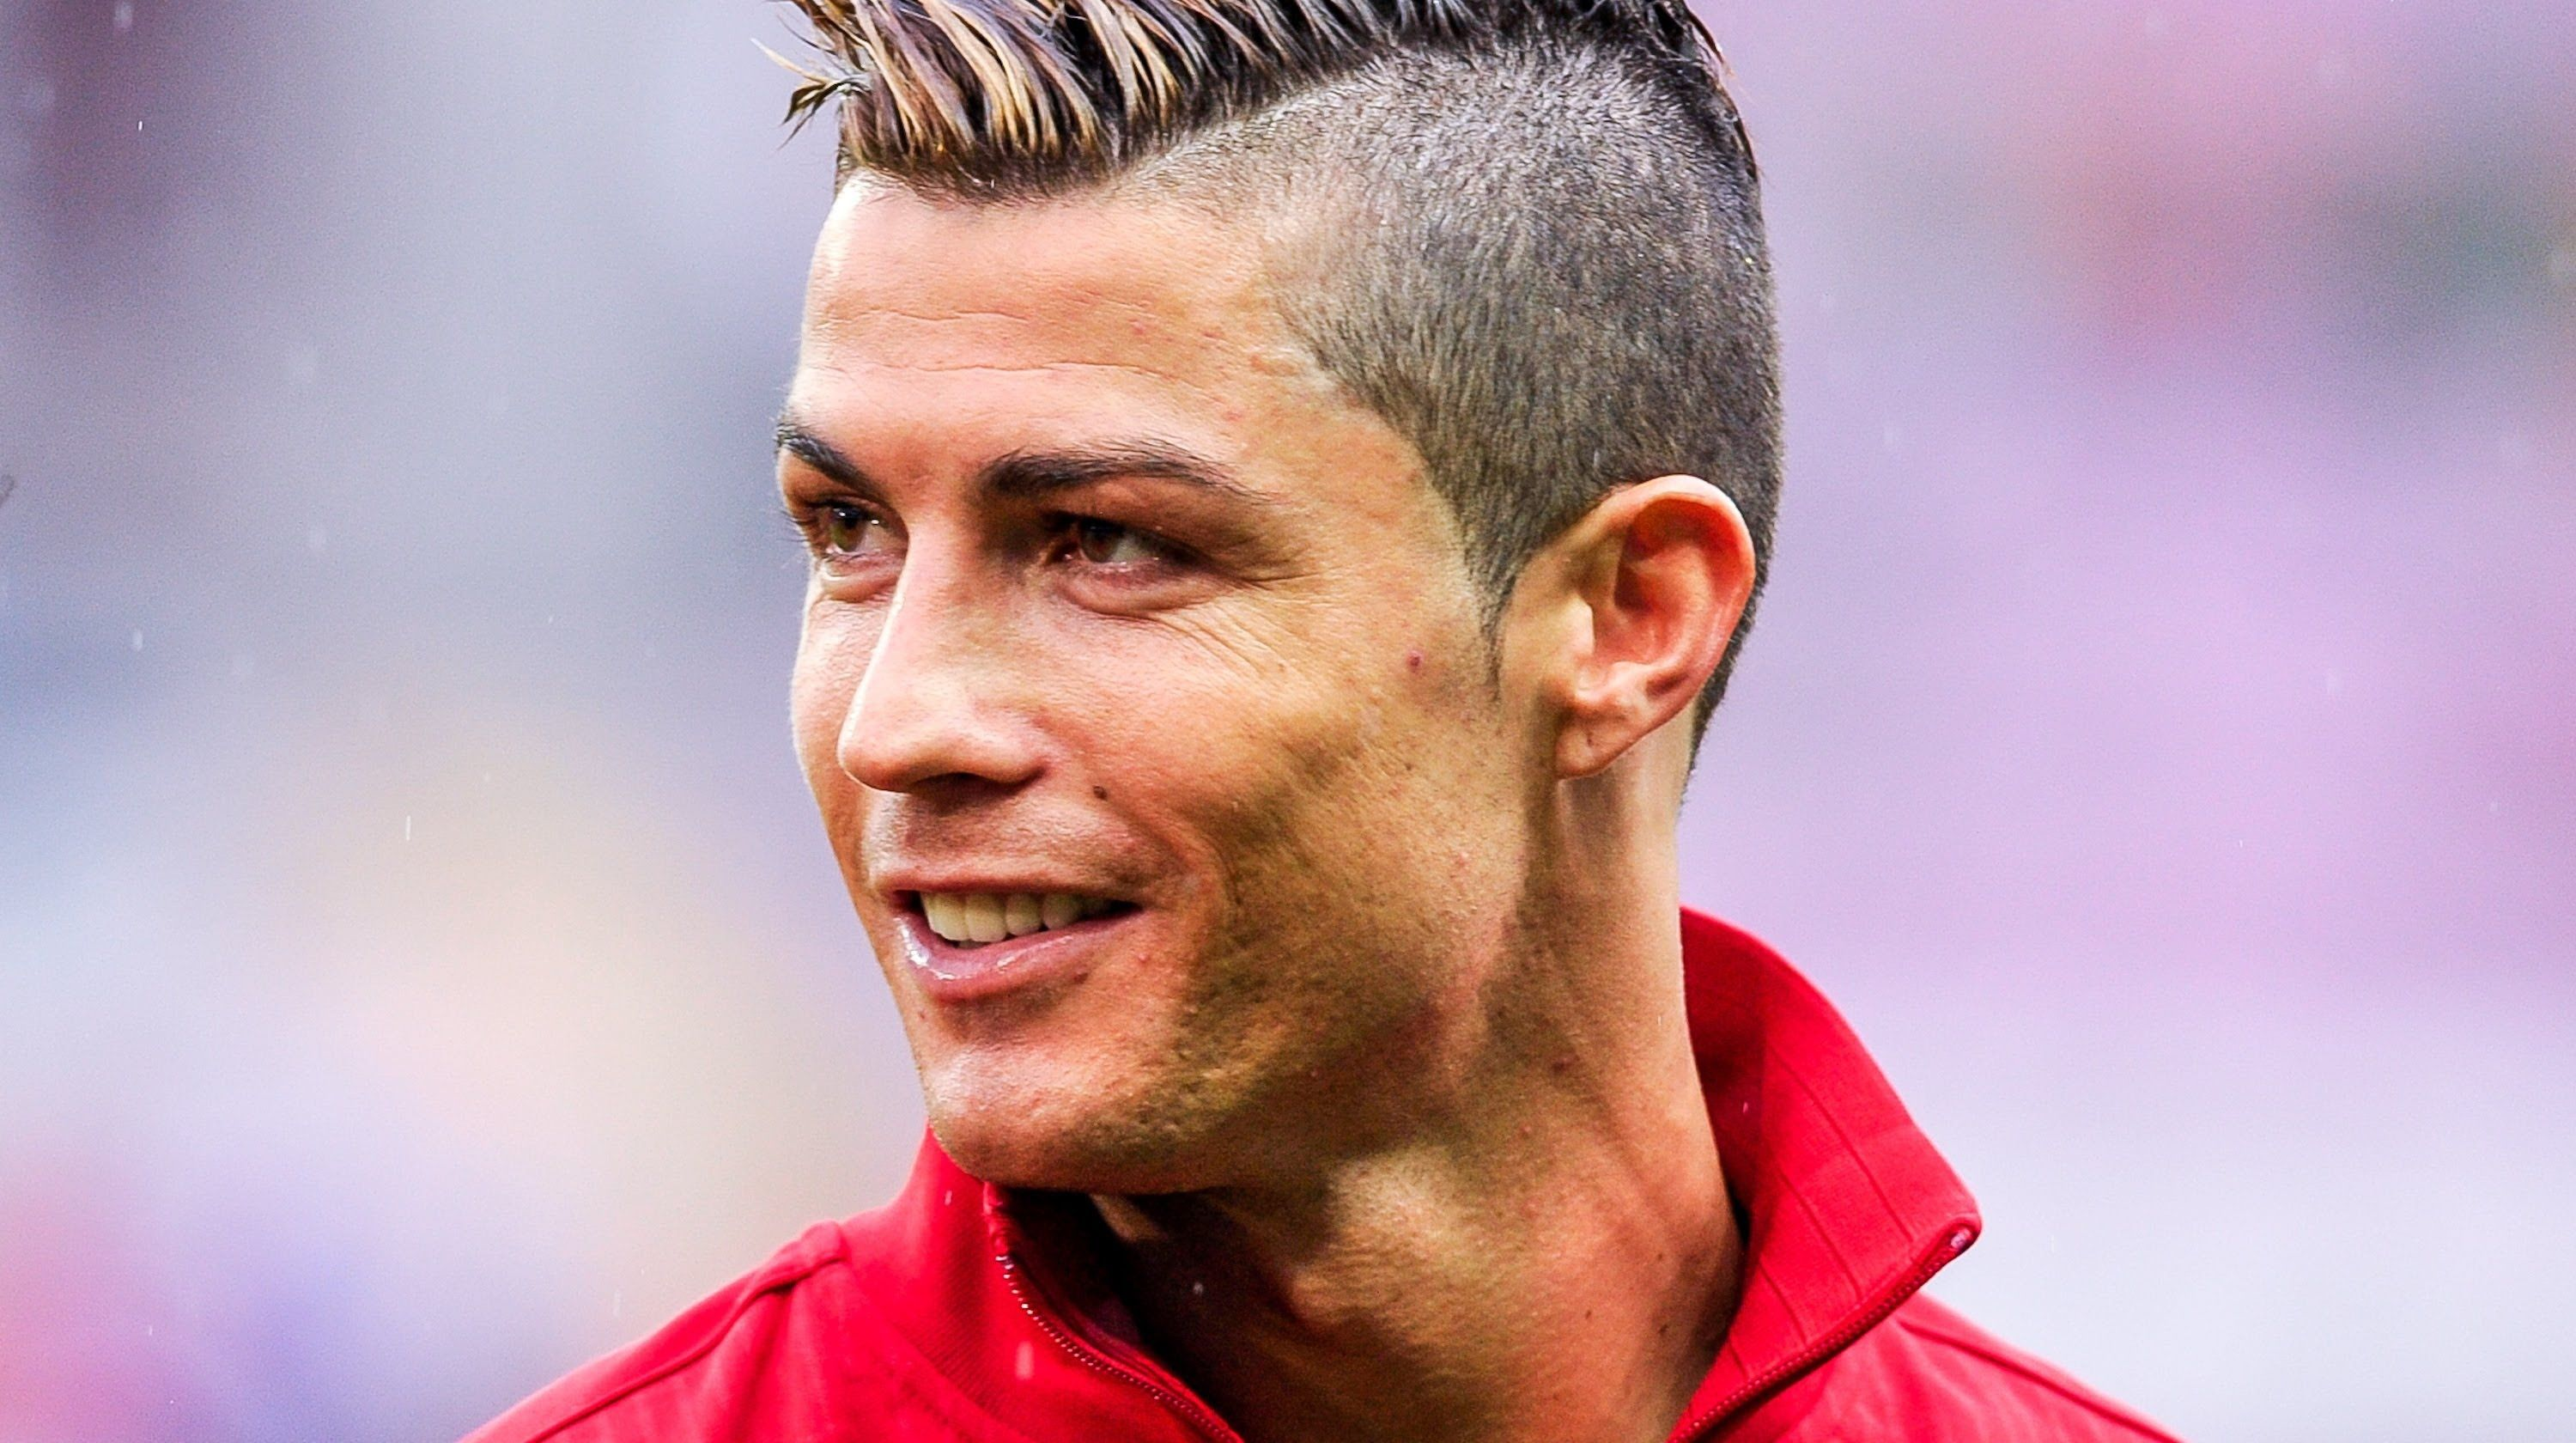 Cristiano Ronaldo Crazy Fast Skills 2013 14 Teo Cri This Business Is Also Going Viral Its Cristiano Ronaldo Hairstyle Ronaldo New Hairstyle Ronaldo Haircut